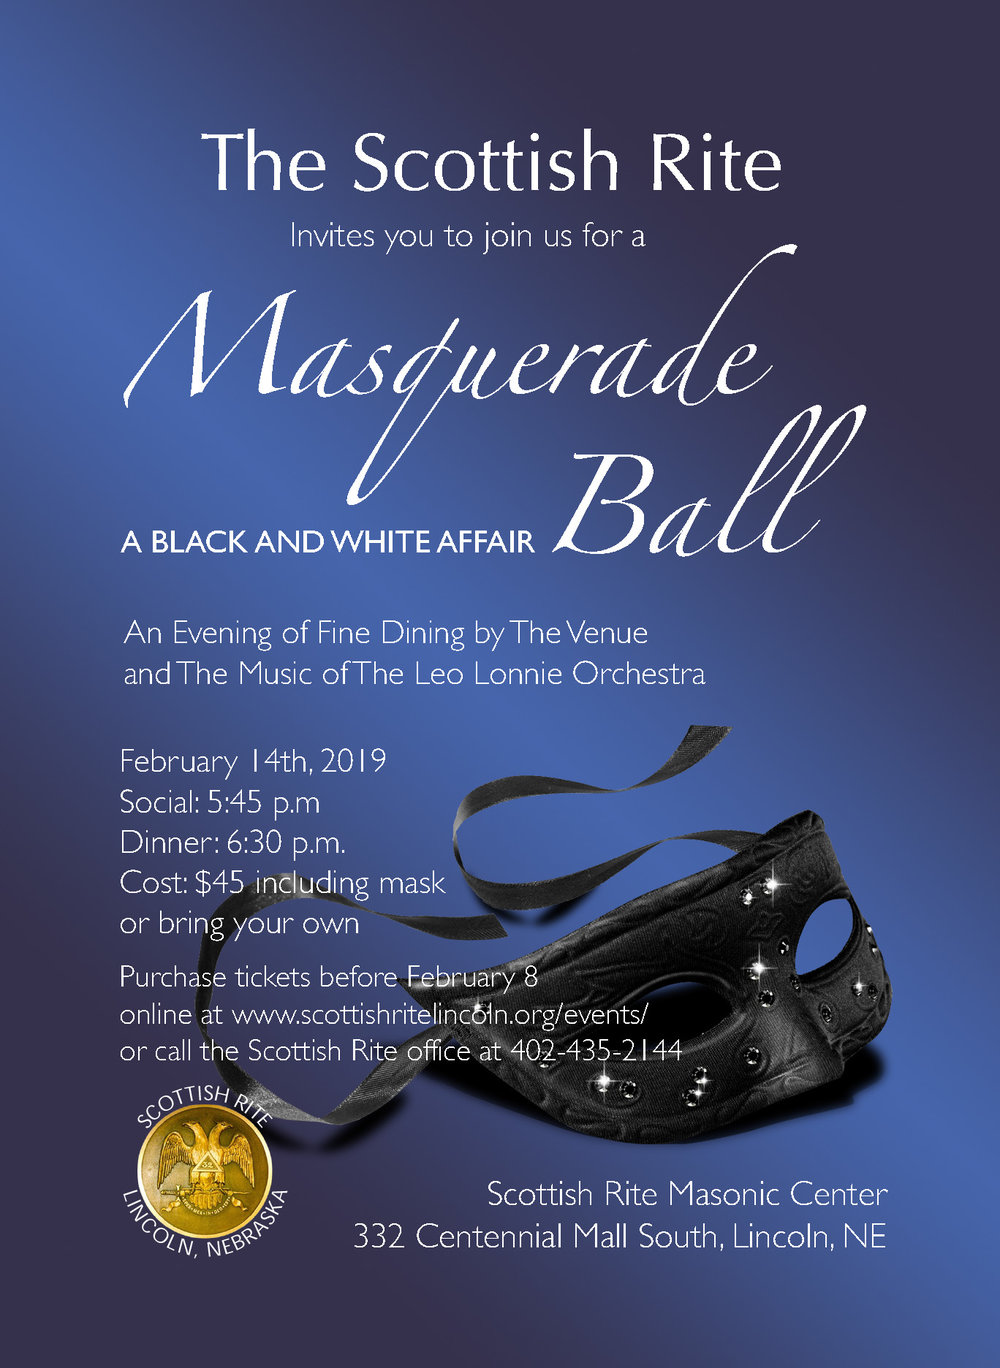 Click above image to download a PDF of the Masquerade Ball flier.